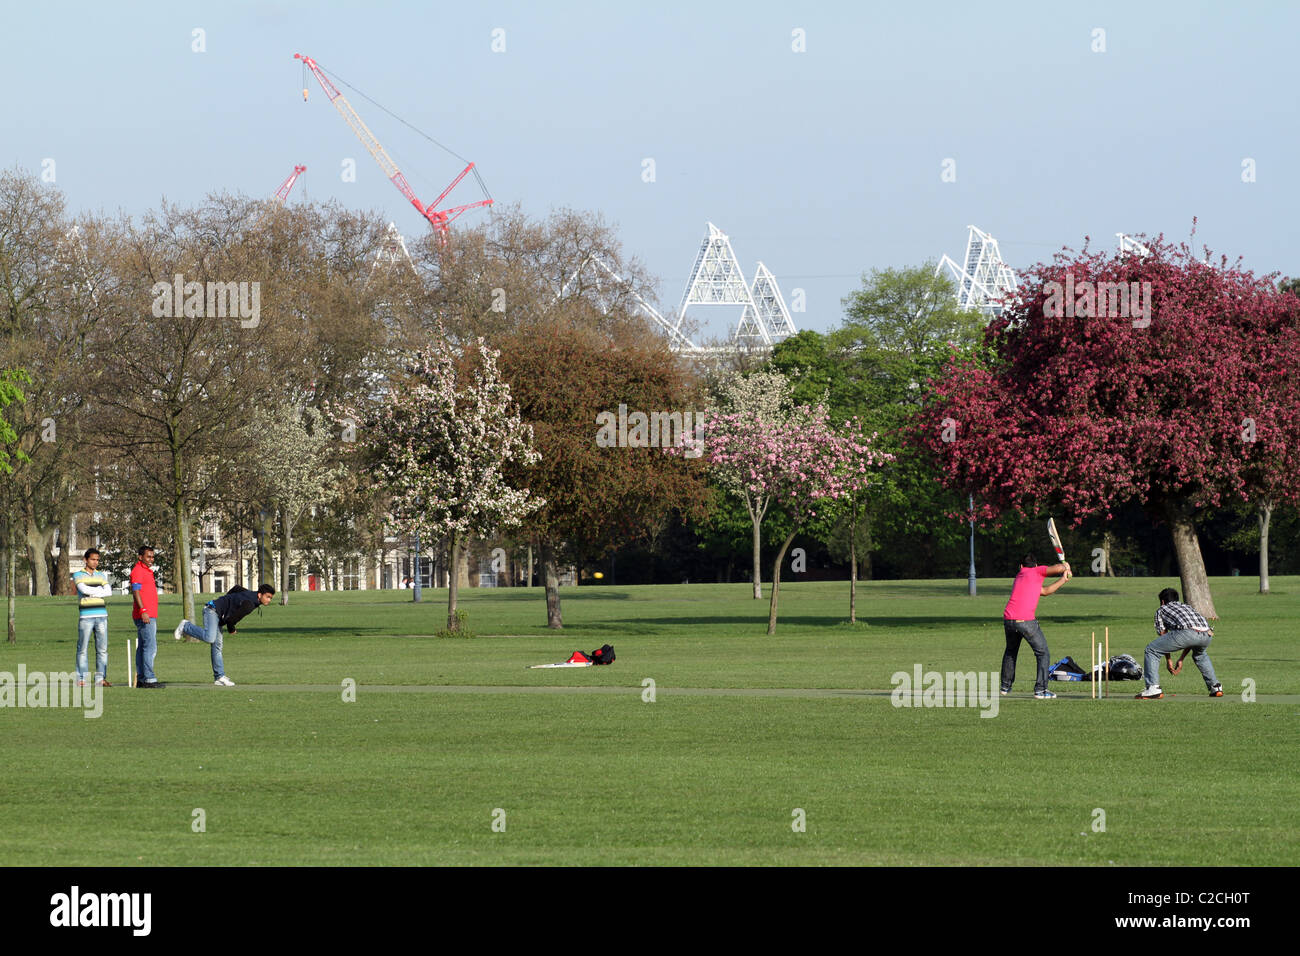 UK. CRICKET MATCH IN VICTORIA PARK WITH VIEWS OF THE LONDON 2012 OLYMPIC STADIUM Stock Photo